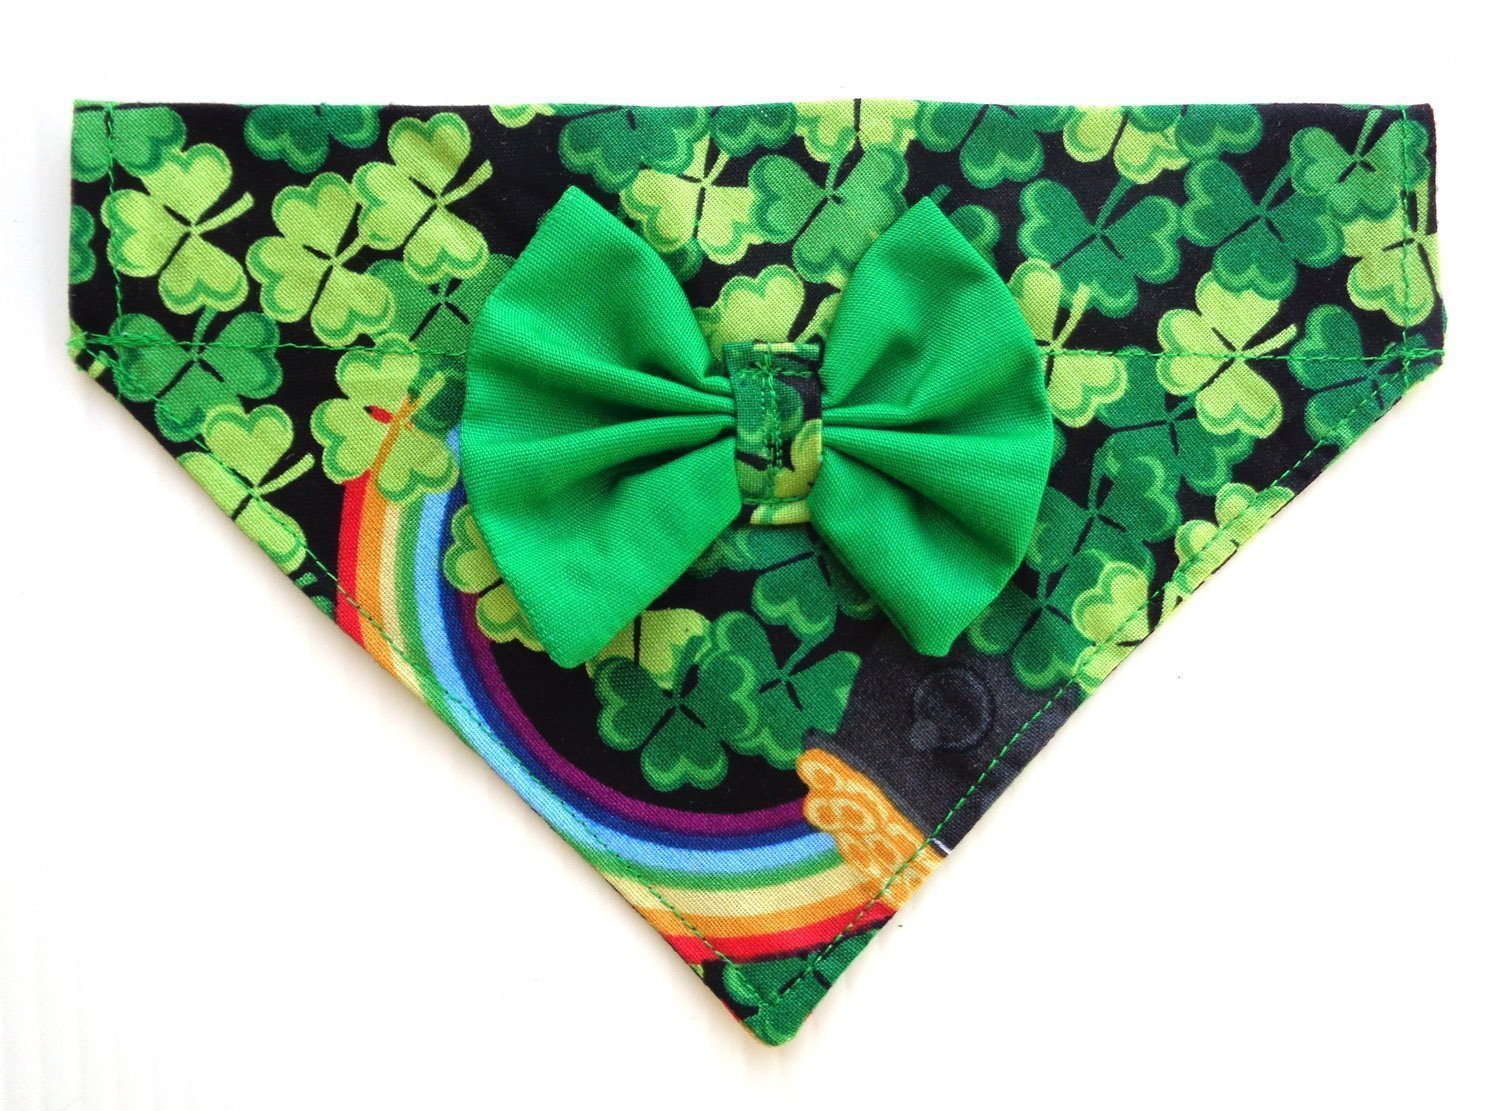 All In One Bandana and Bow 3 Leaf Clover Print Over the collar thread-thru Dog Bandana Green Bow, St Patrick's Day Accessories, Petwear Fashion Neckwear